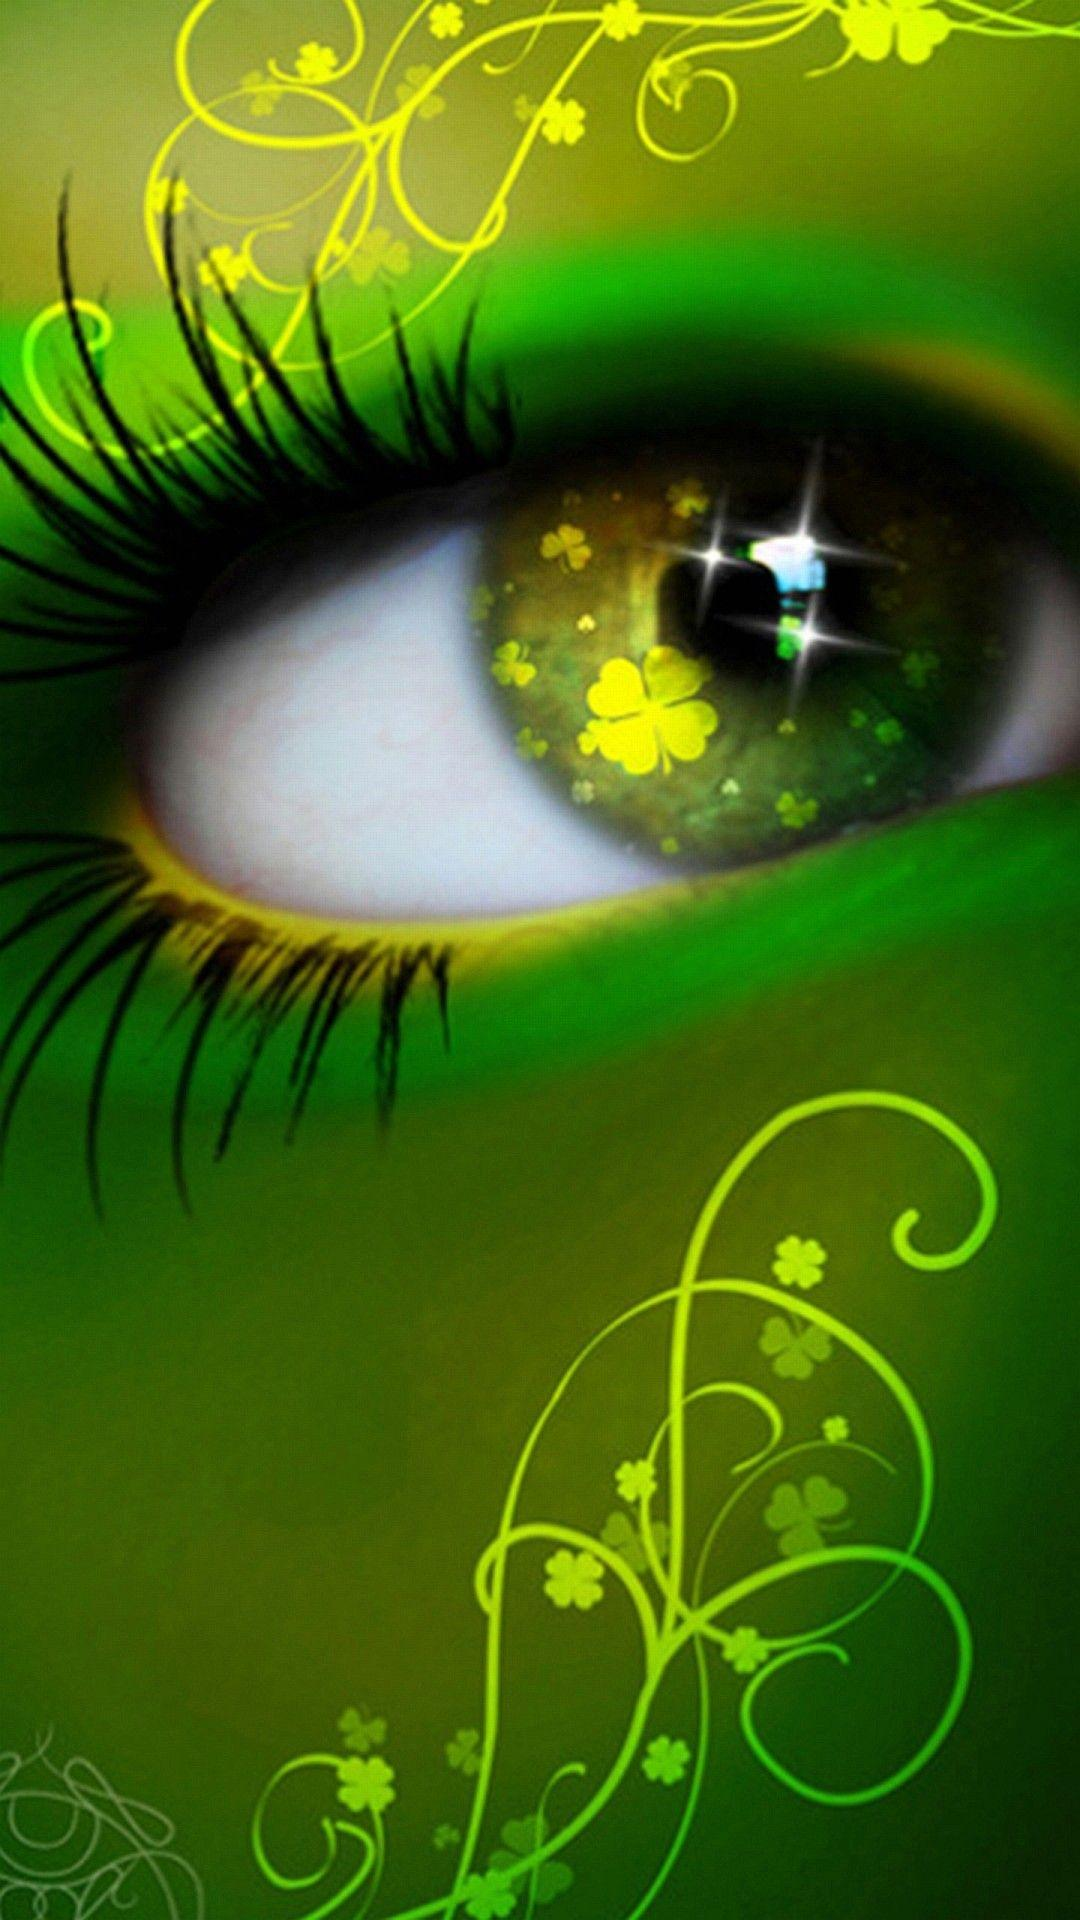 Wallpapers Iphone 6 Plus Eye Green Lucky 5 5 Inches